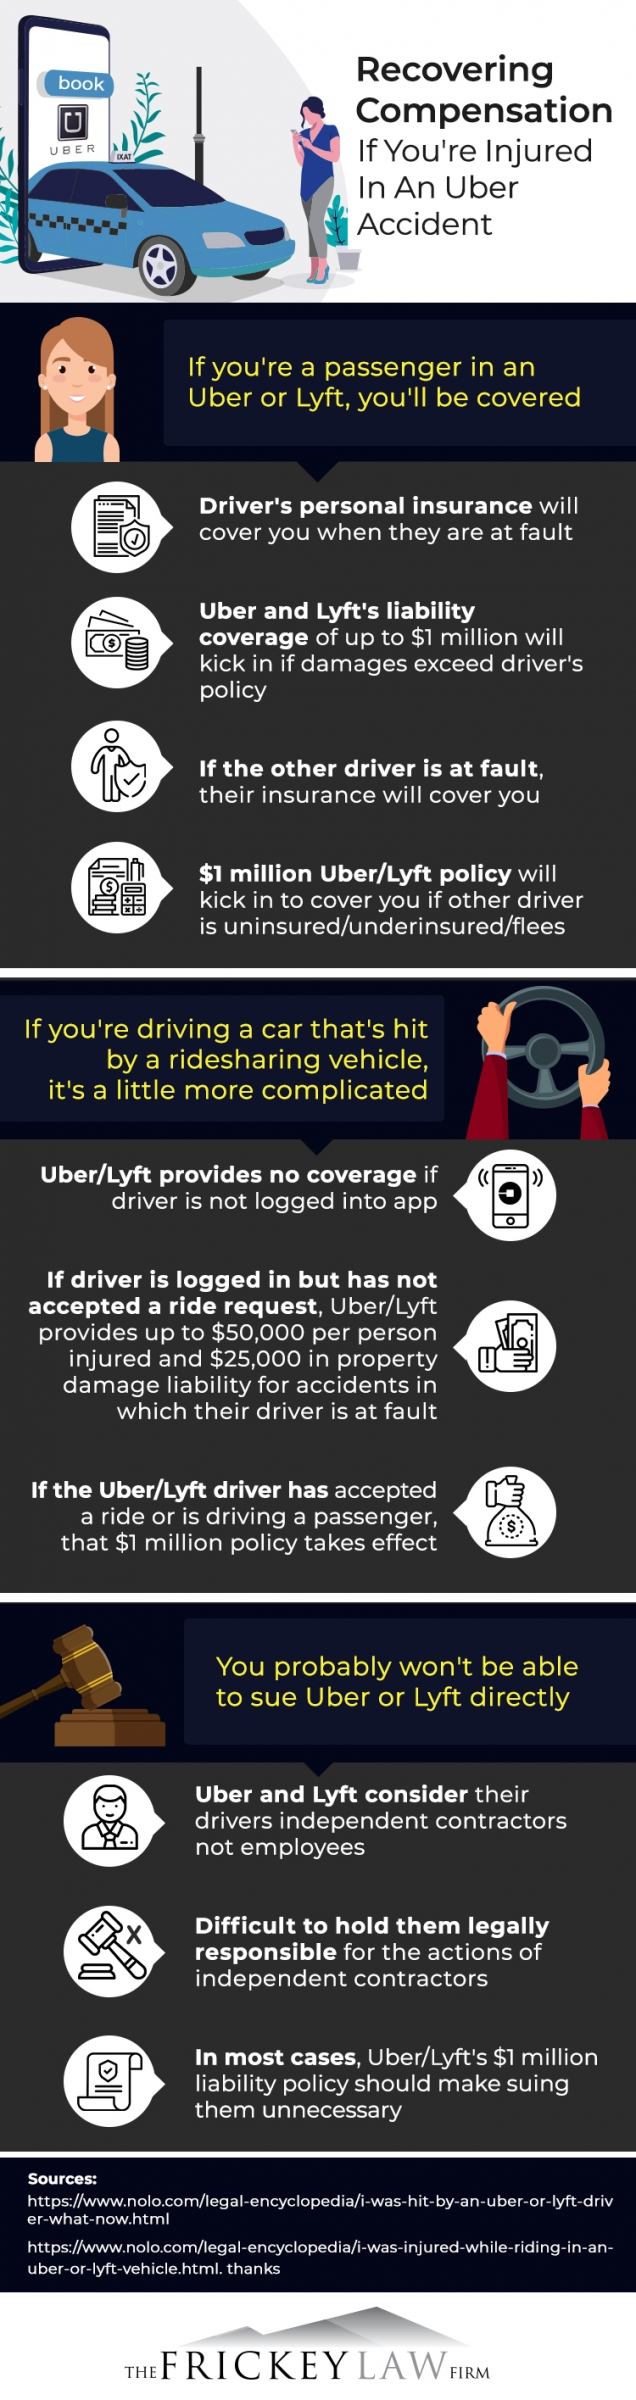 Recovering compensation from an Uber or Lyft car accident